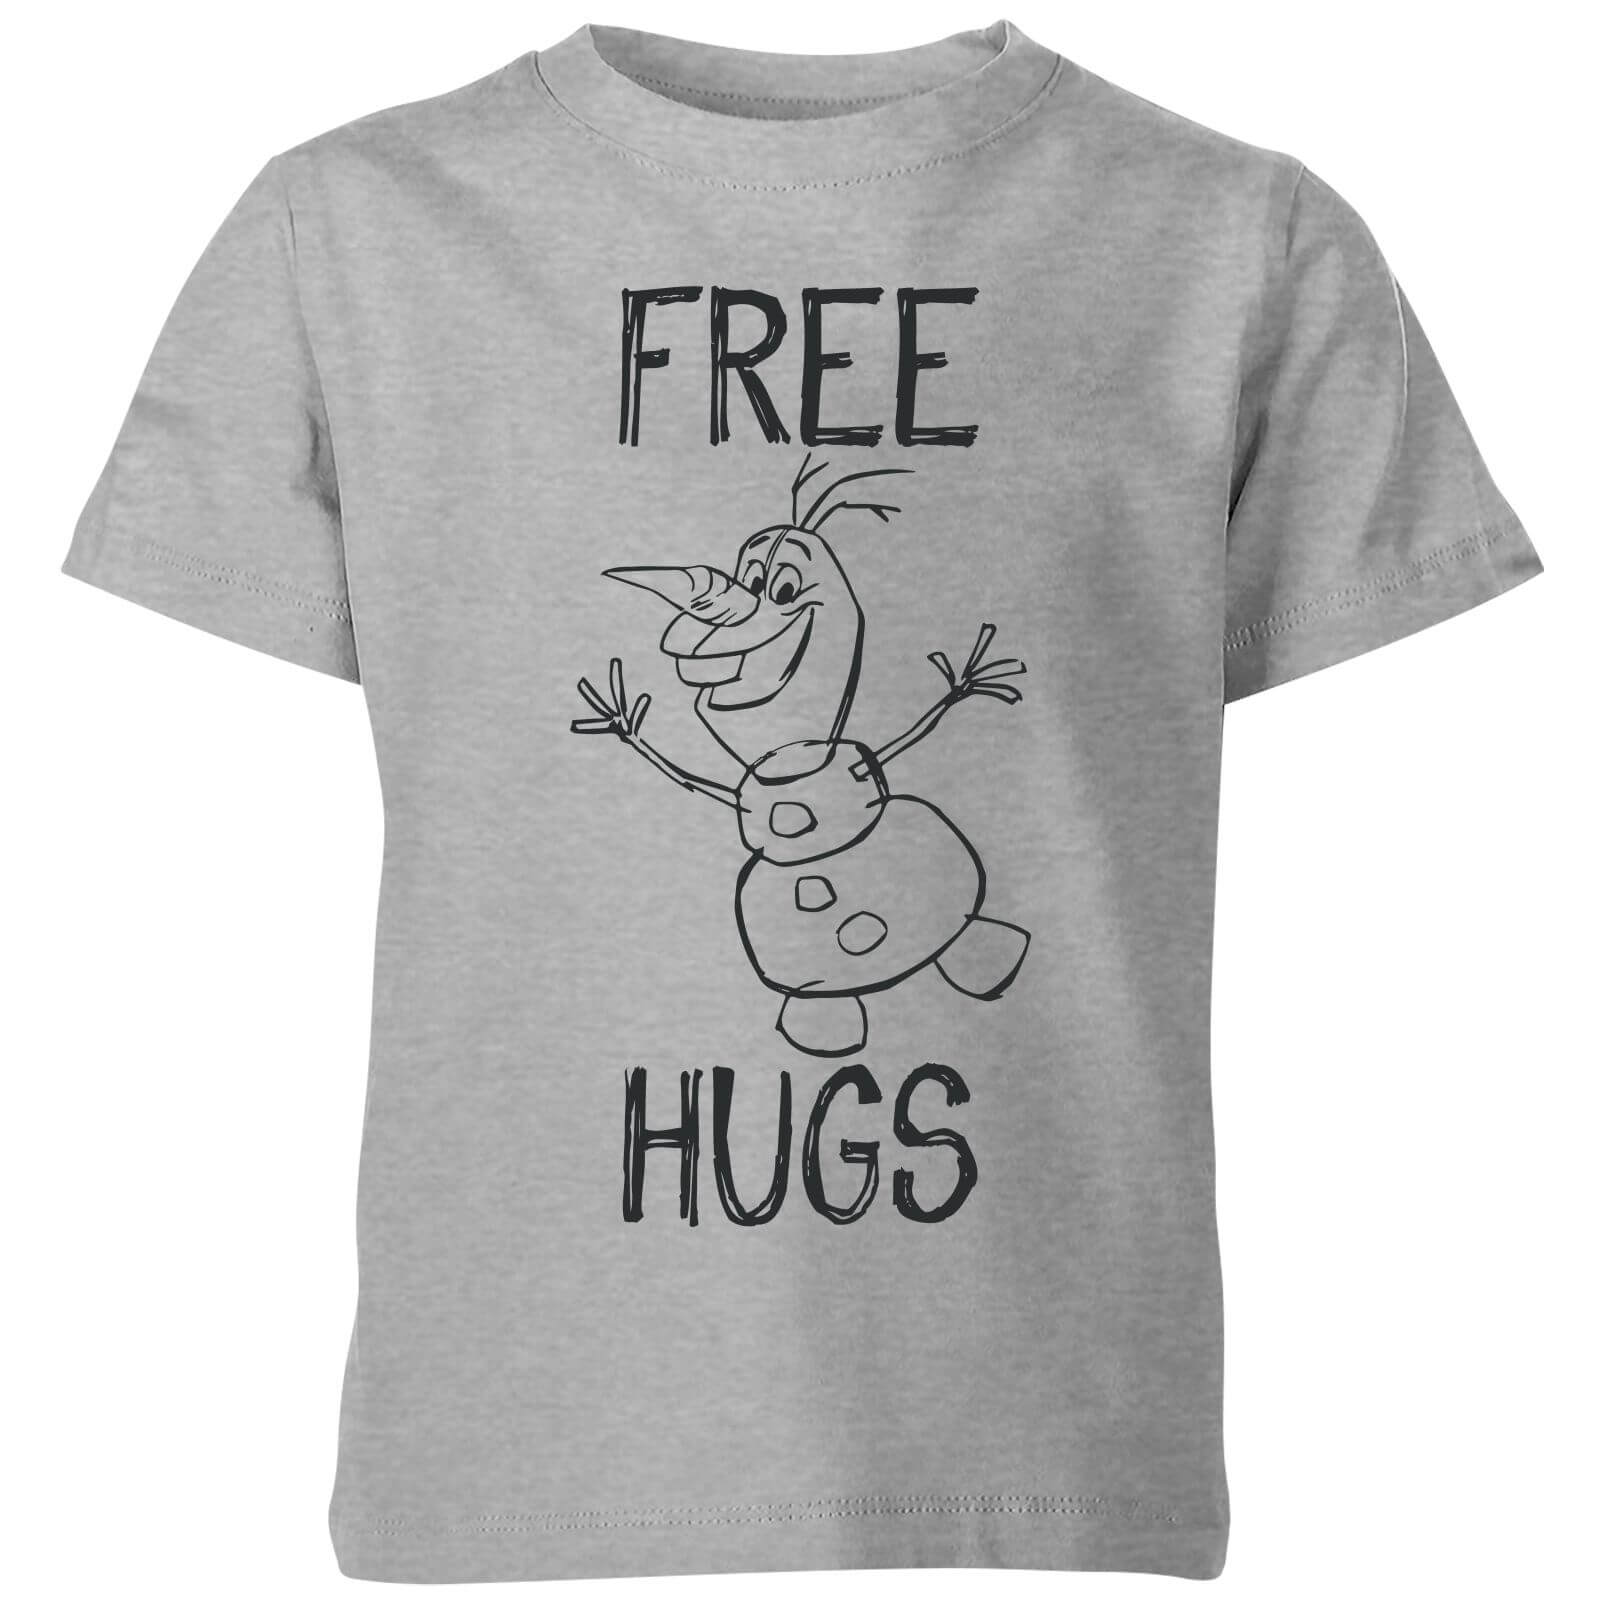 Frozen Olaf Free Hugs Kids